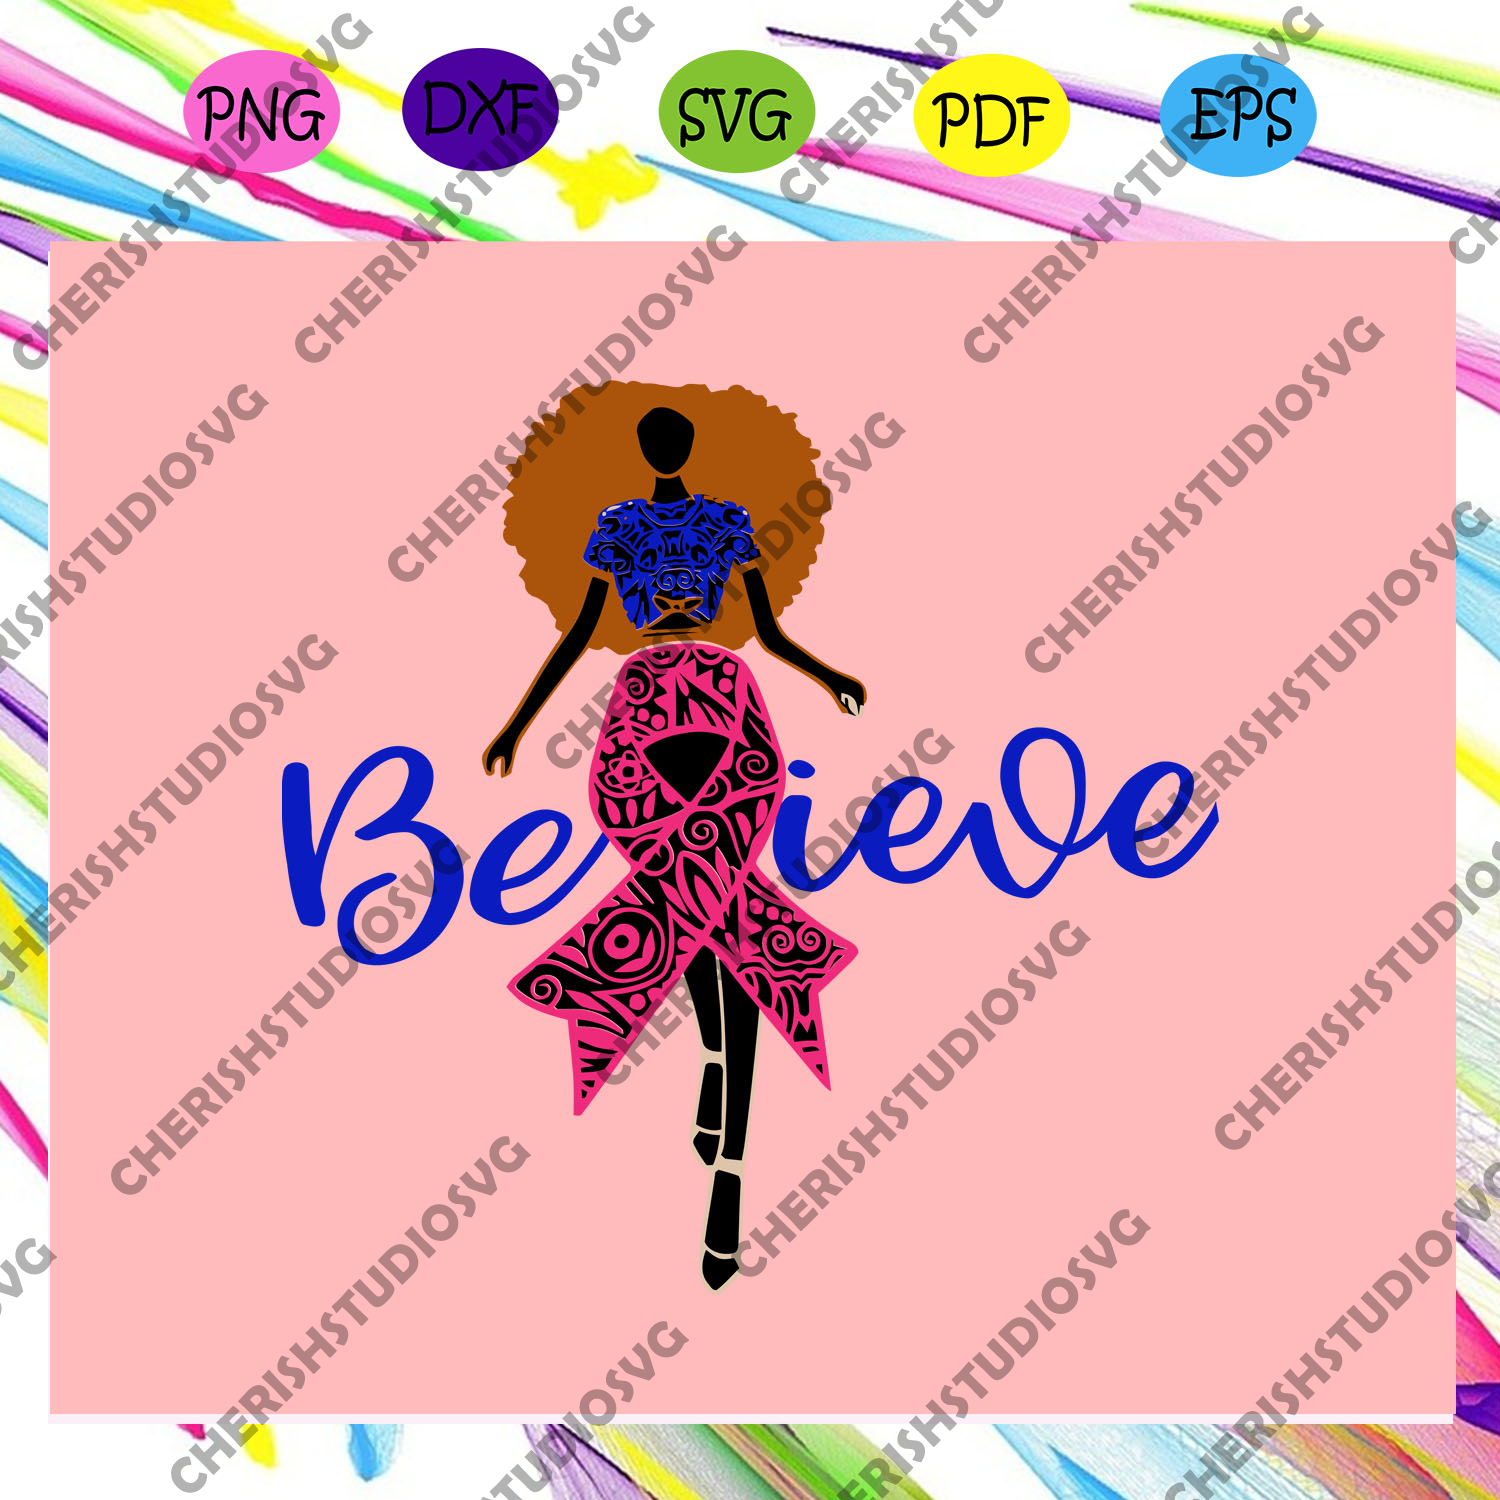 Believe SVG, Breast cancer black girl, believe svg file,black girl svg, black girl gift, pink breast cancer svg, cancer awareness, cancer ribbon svg, breast cancer ribbon,For Silhouette, Files For Cricut, SVG, DXF, EPS, PNG Instant Download